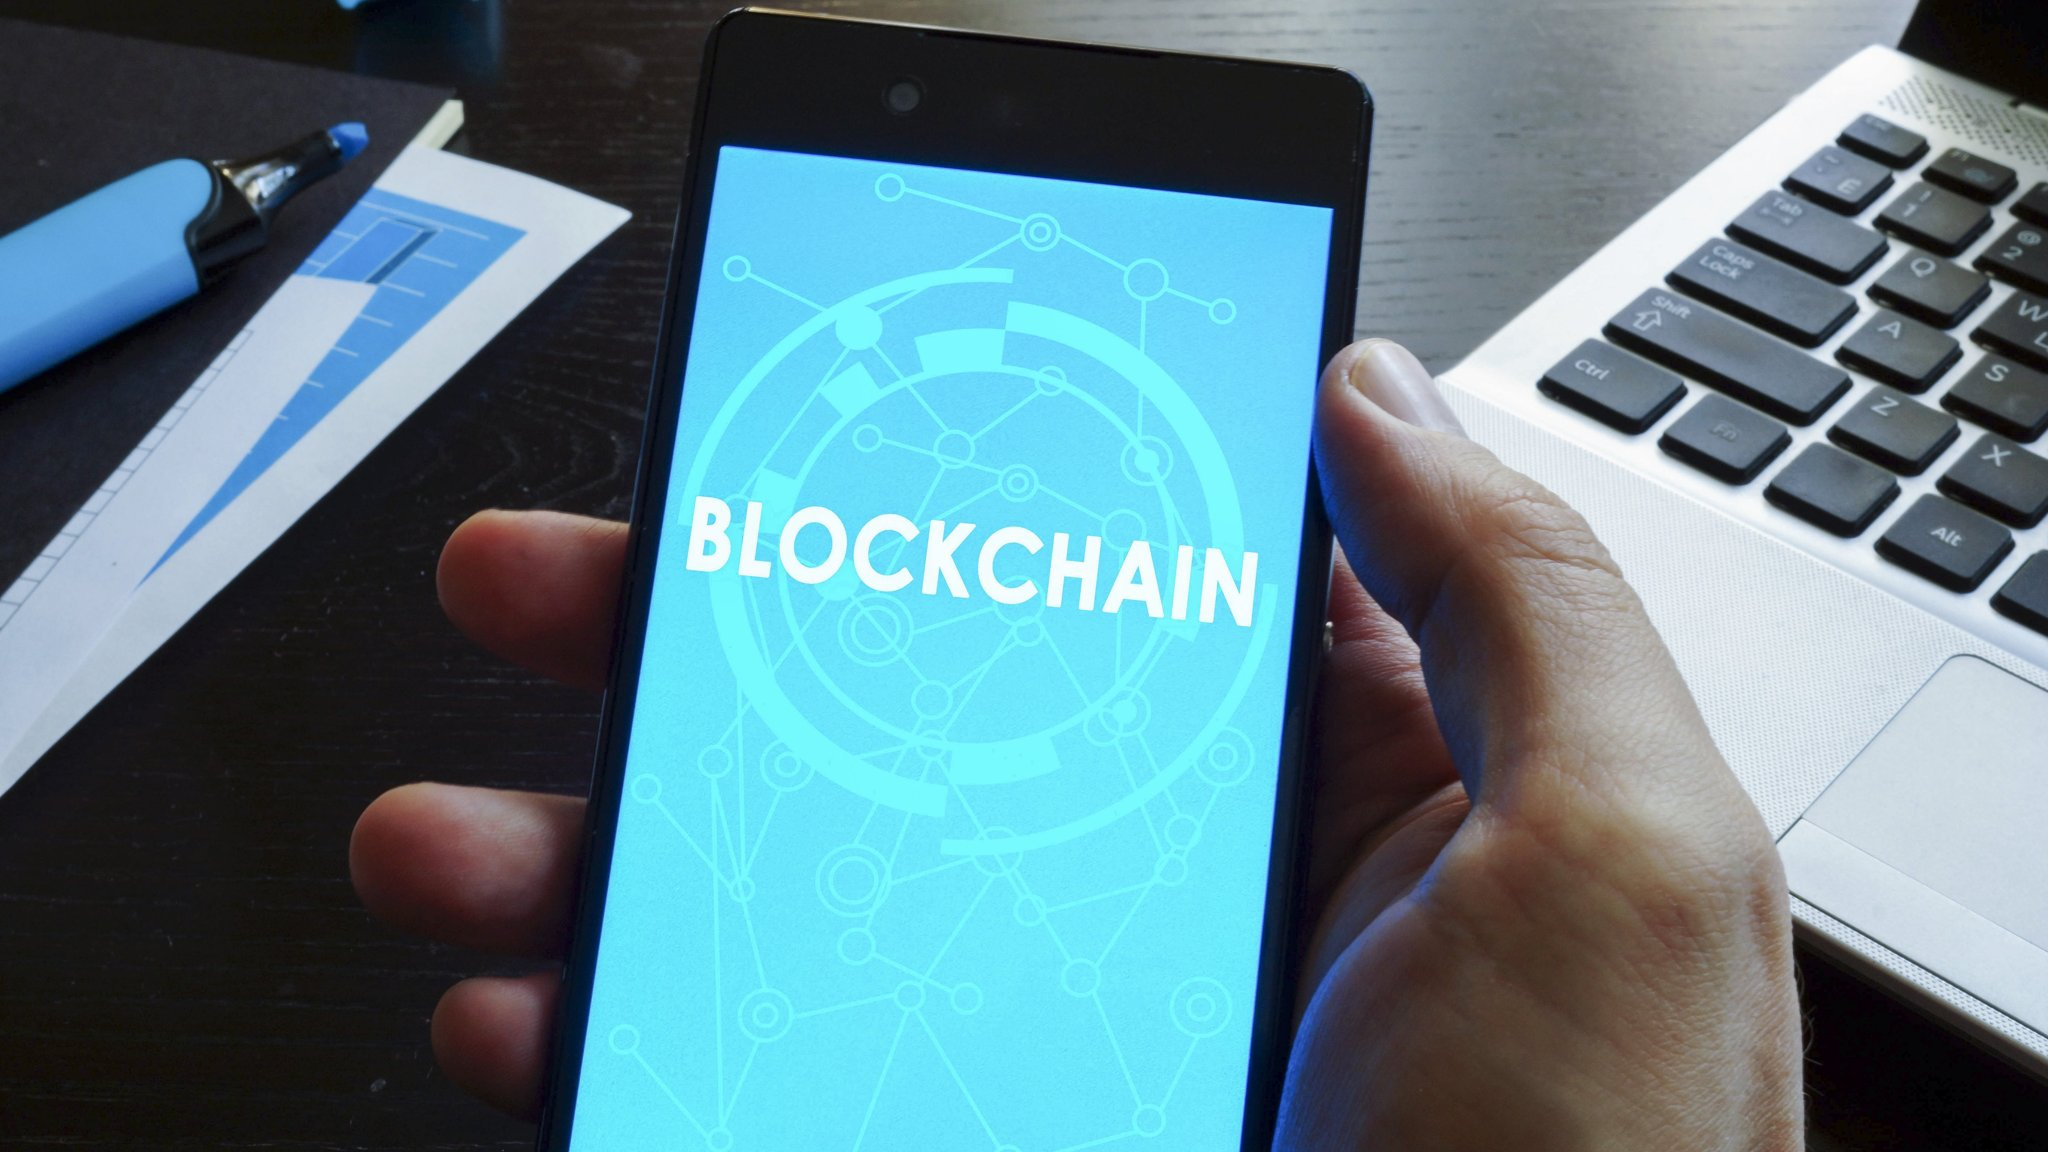 Best Blockchain Apps That Actually Pay You Real Money